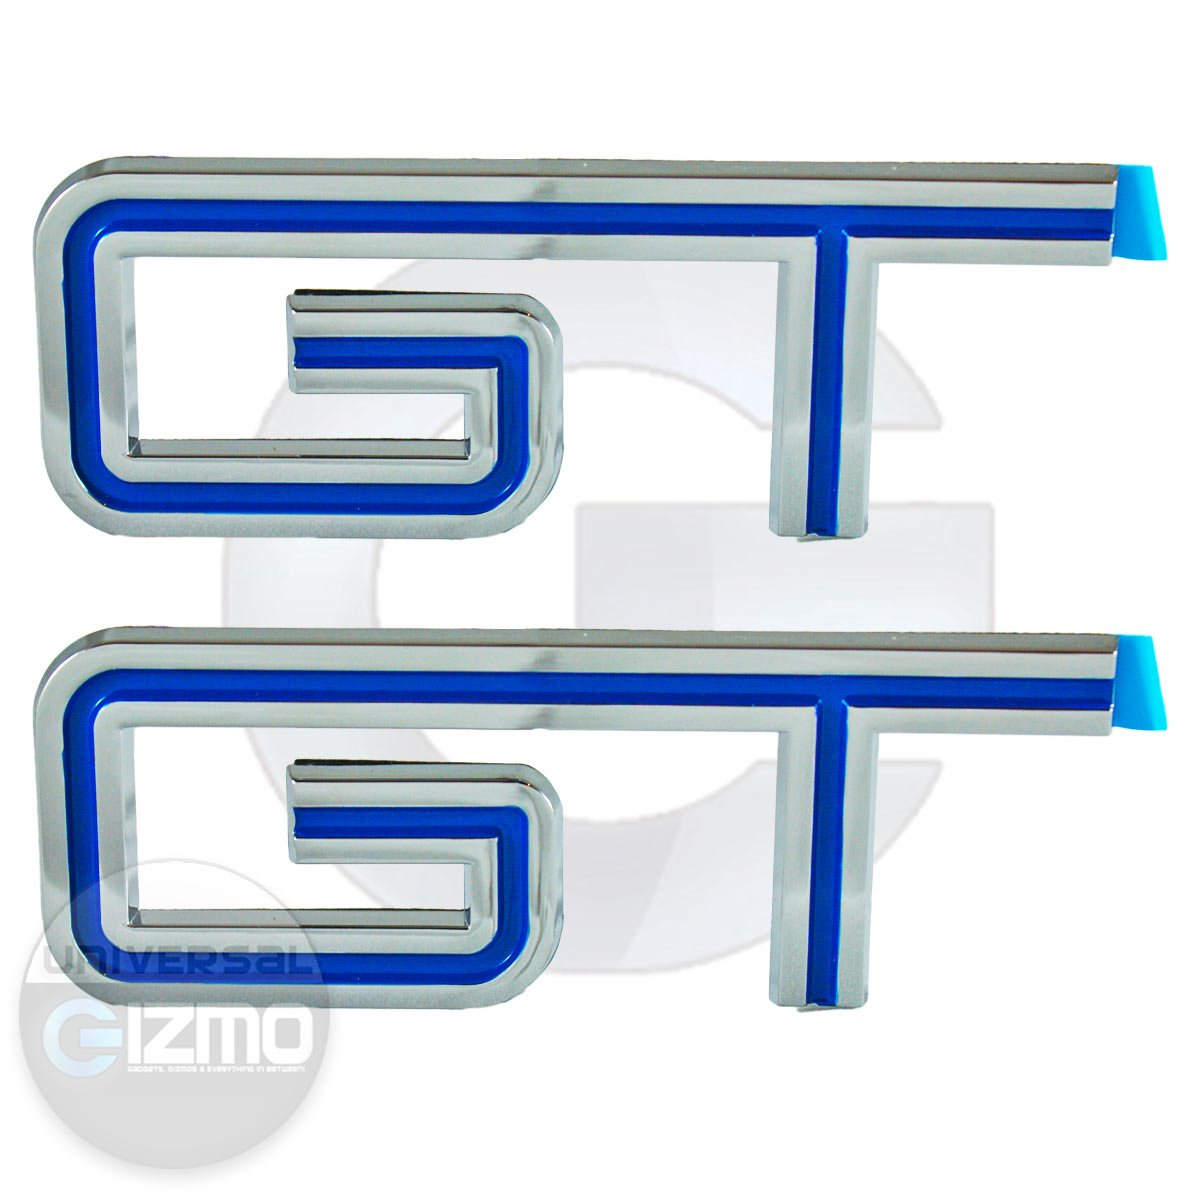 Ford Mustang GT Fender and Trunk Emblems Pair Blue Universal Gizmo